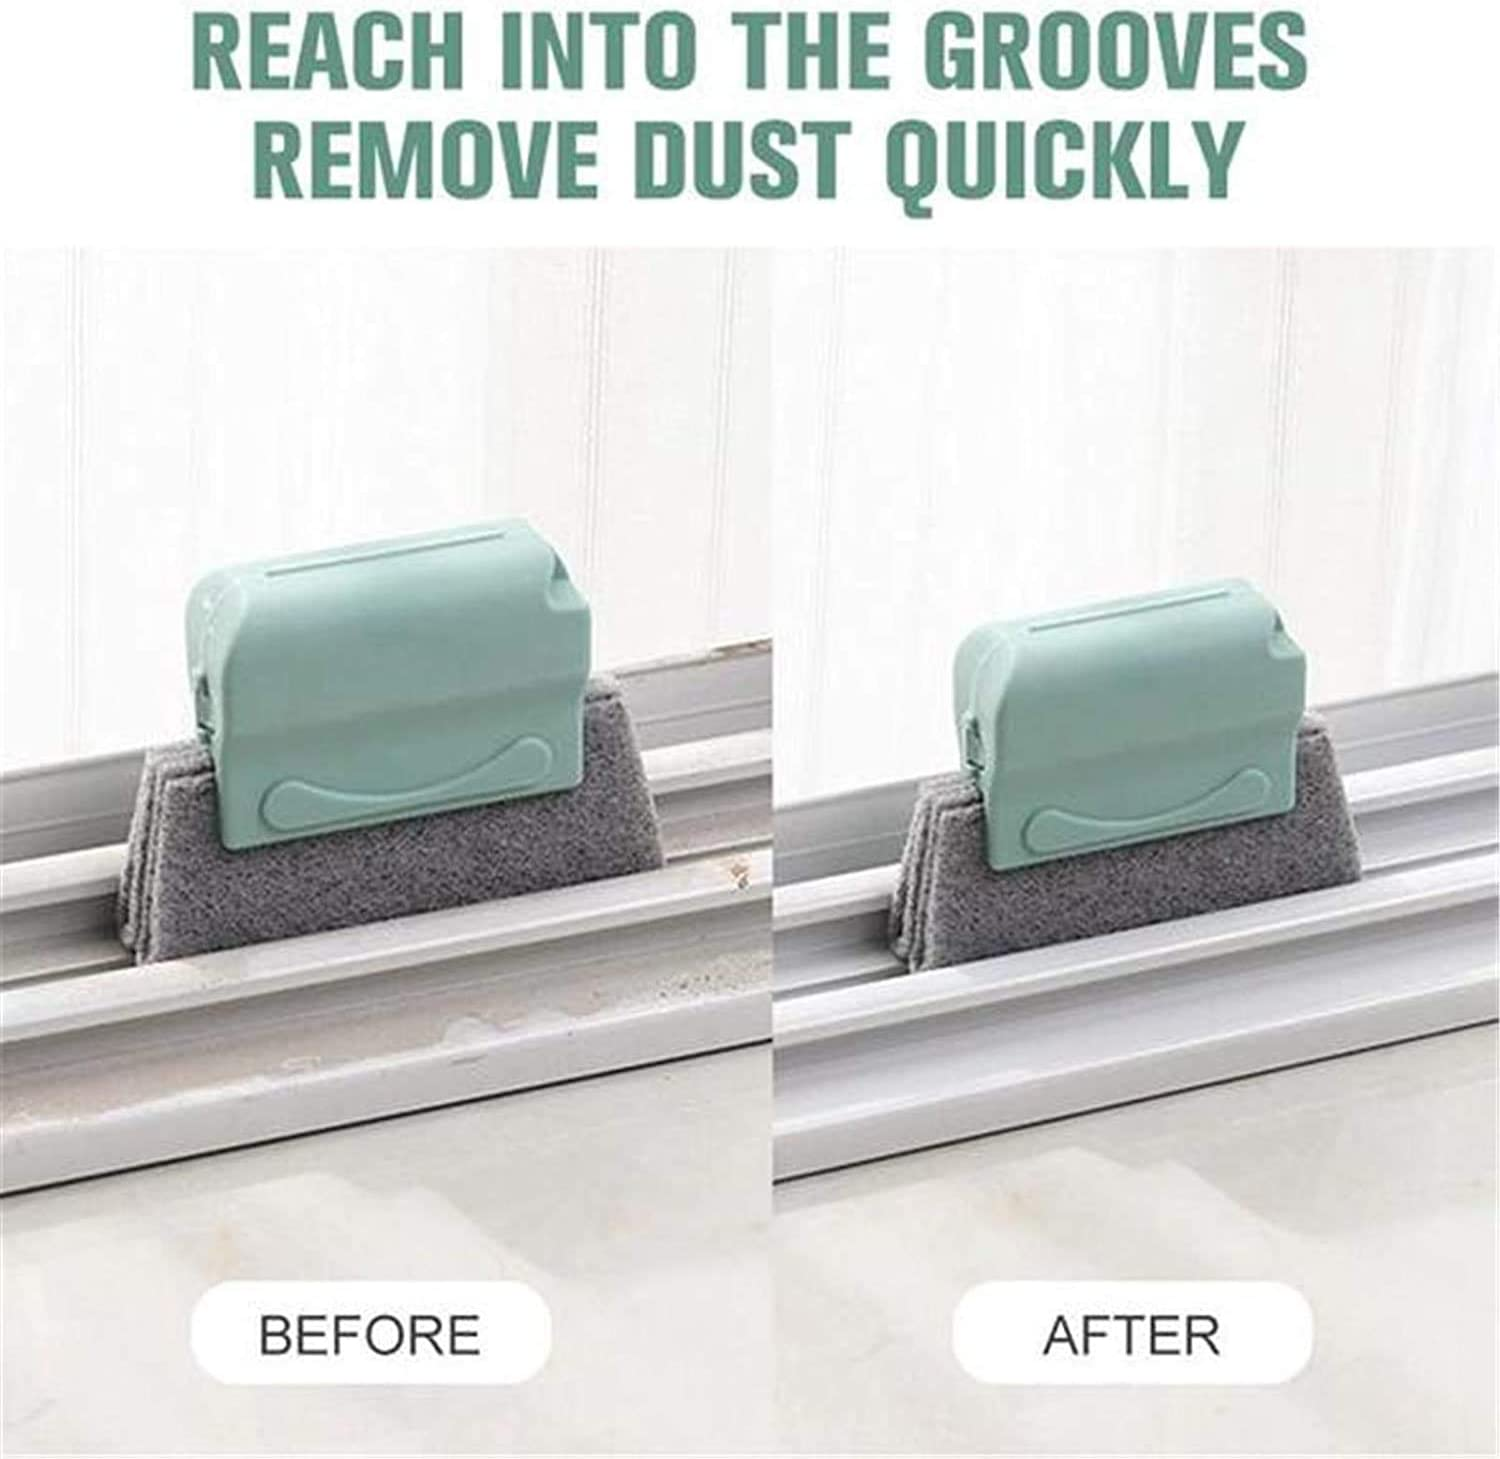 Fruit & Vegetable Tools Creative Window Groove Cleaning Brush Quickly Clean  All Window Slides and Gaps 3pcs Hand-held Crevice Cleaner Tools  Gray+Beige+Green Magic Window Cleaning Brush Kitchen & Dining coxidev.com